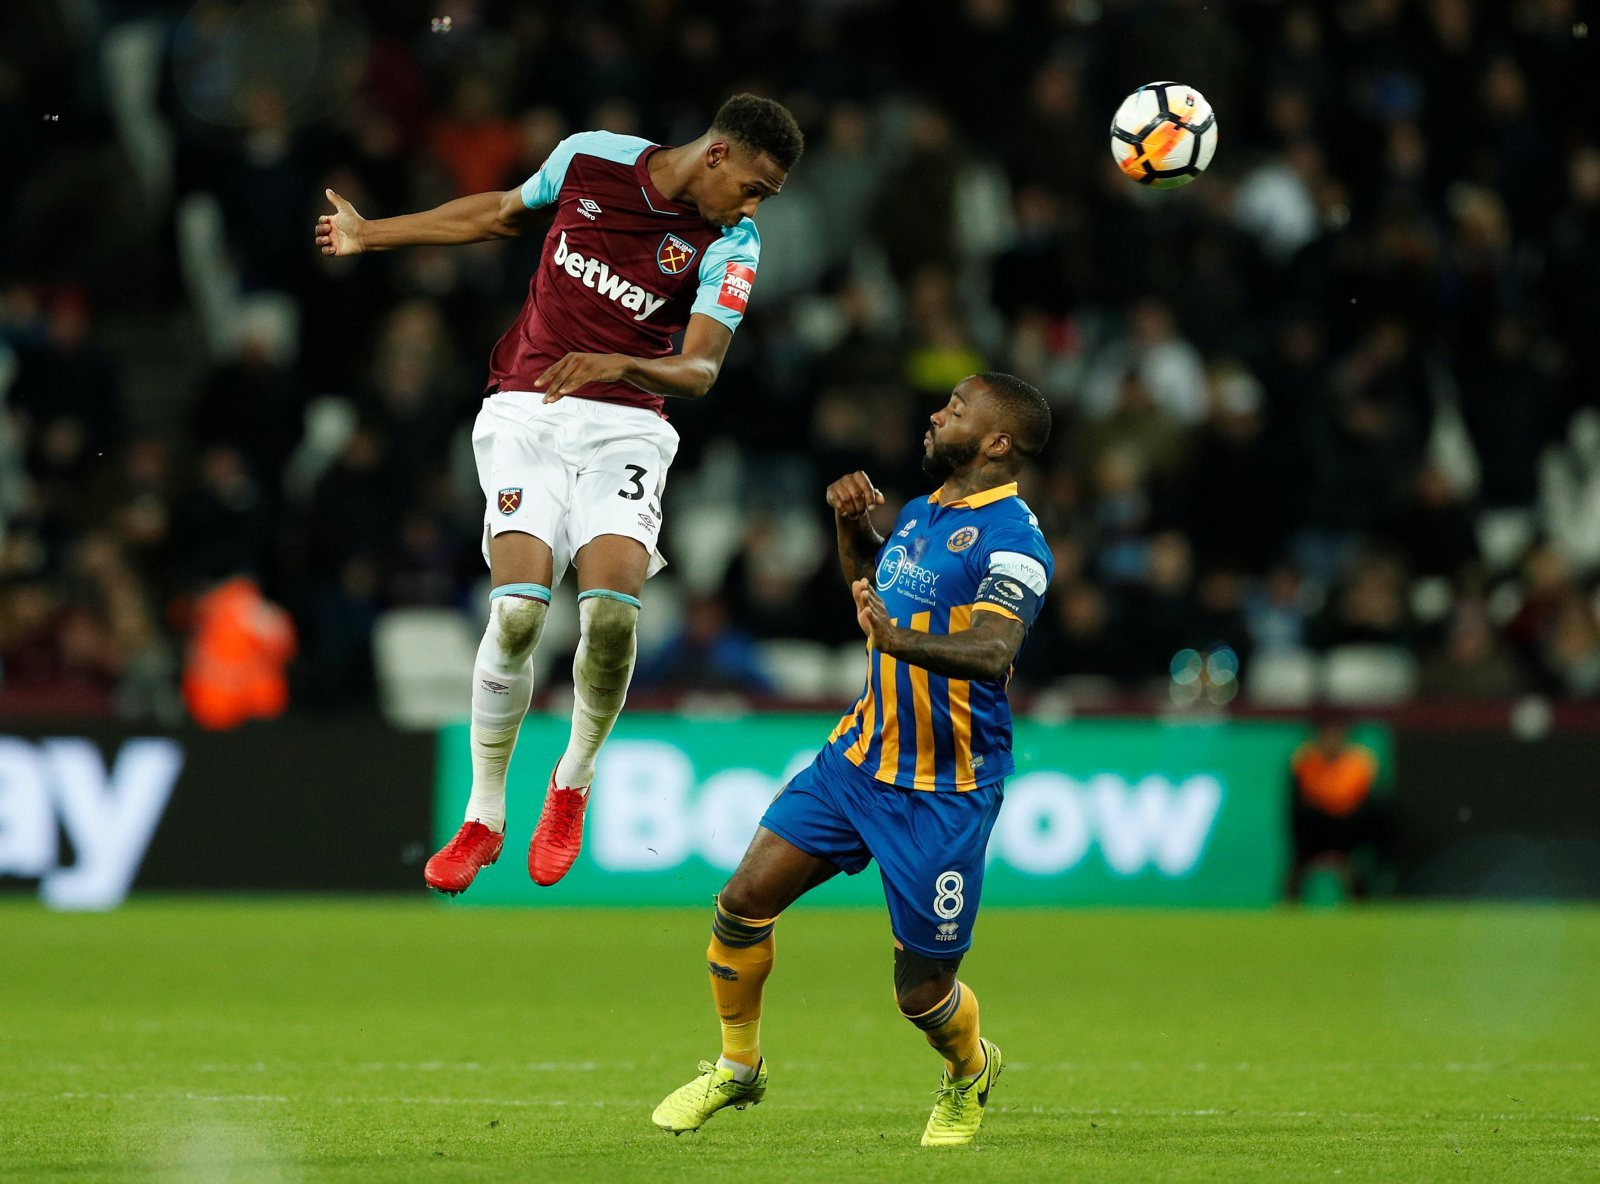 Rangers have to look at Reece Oxford as a quality option to bring in